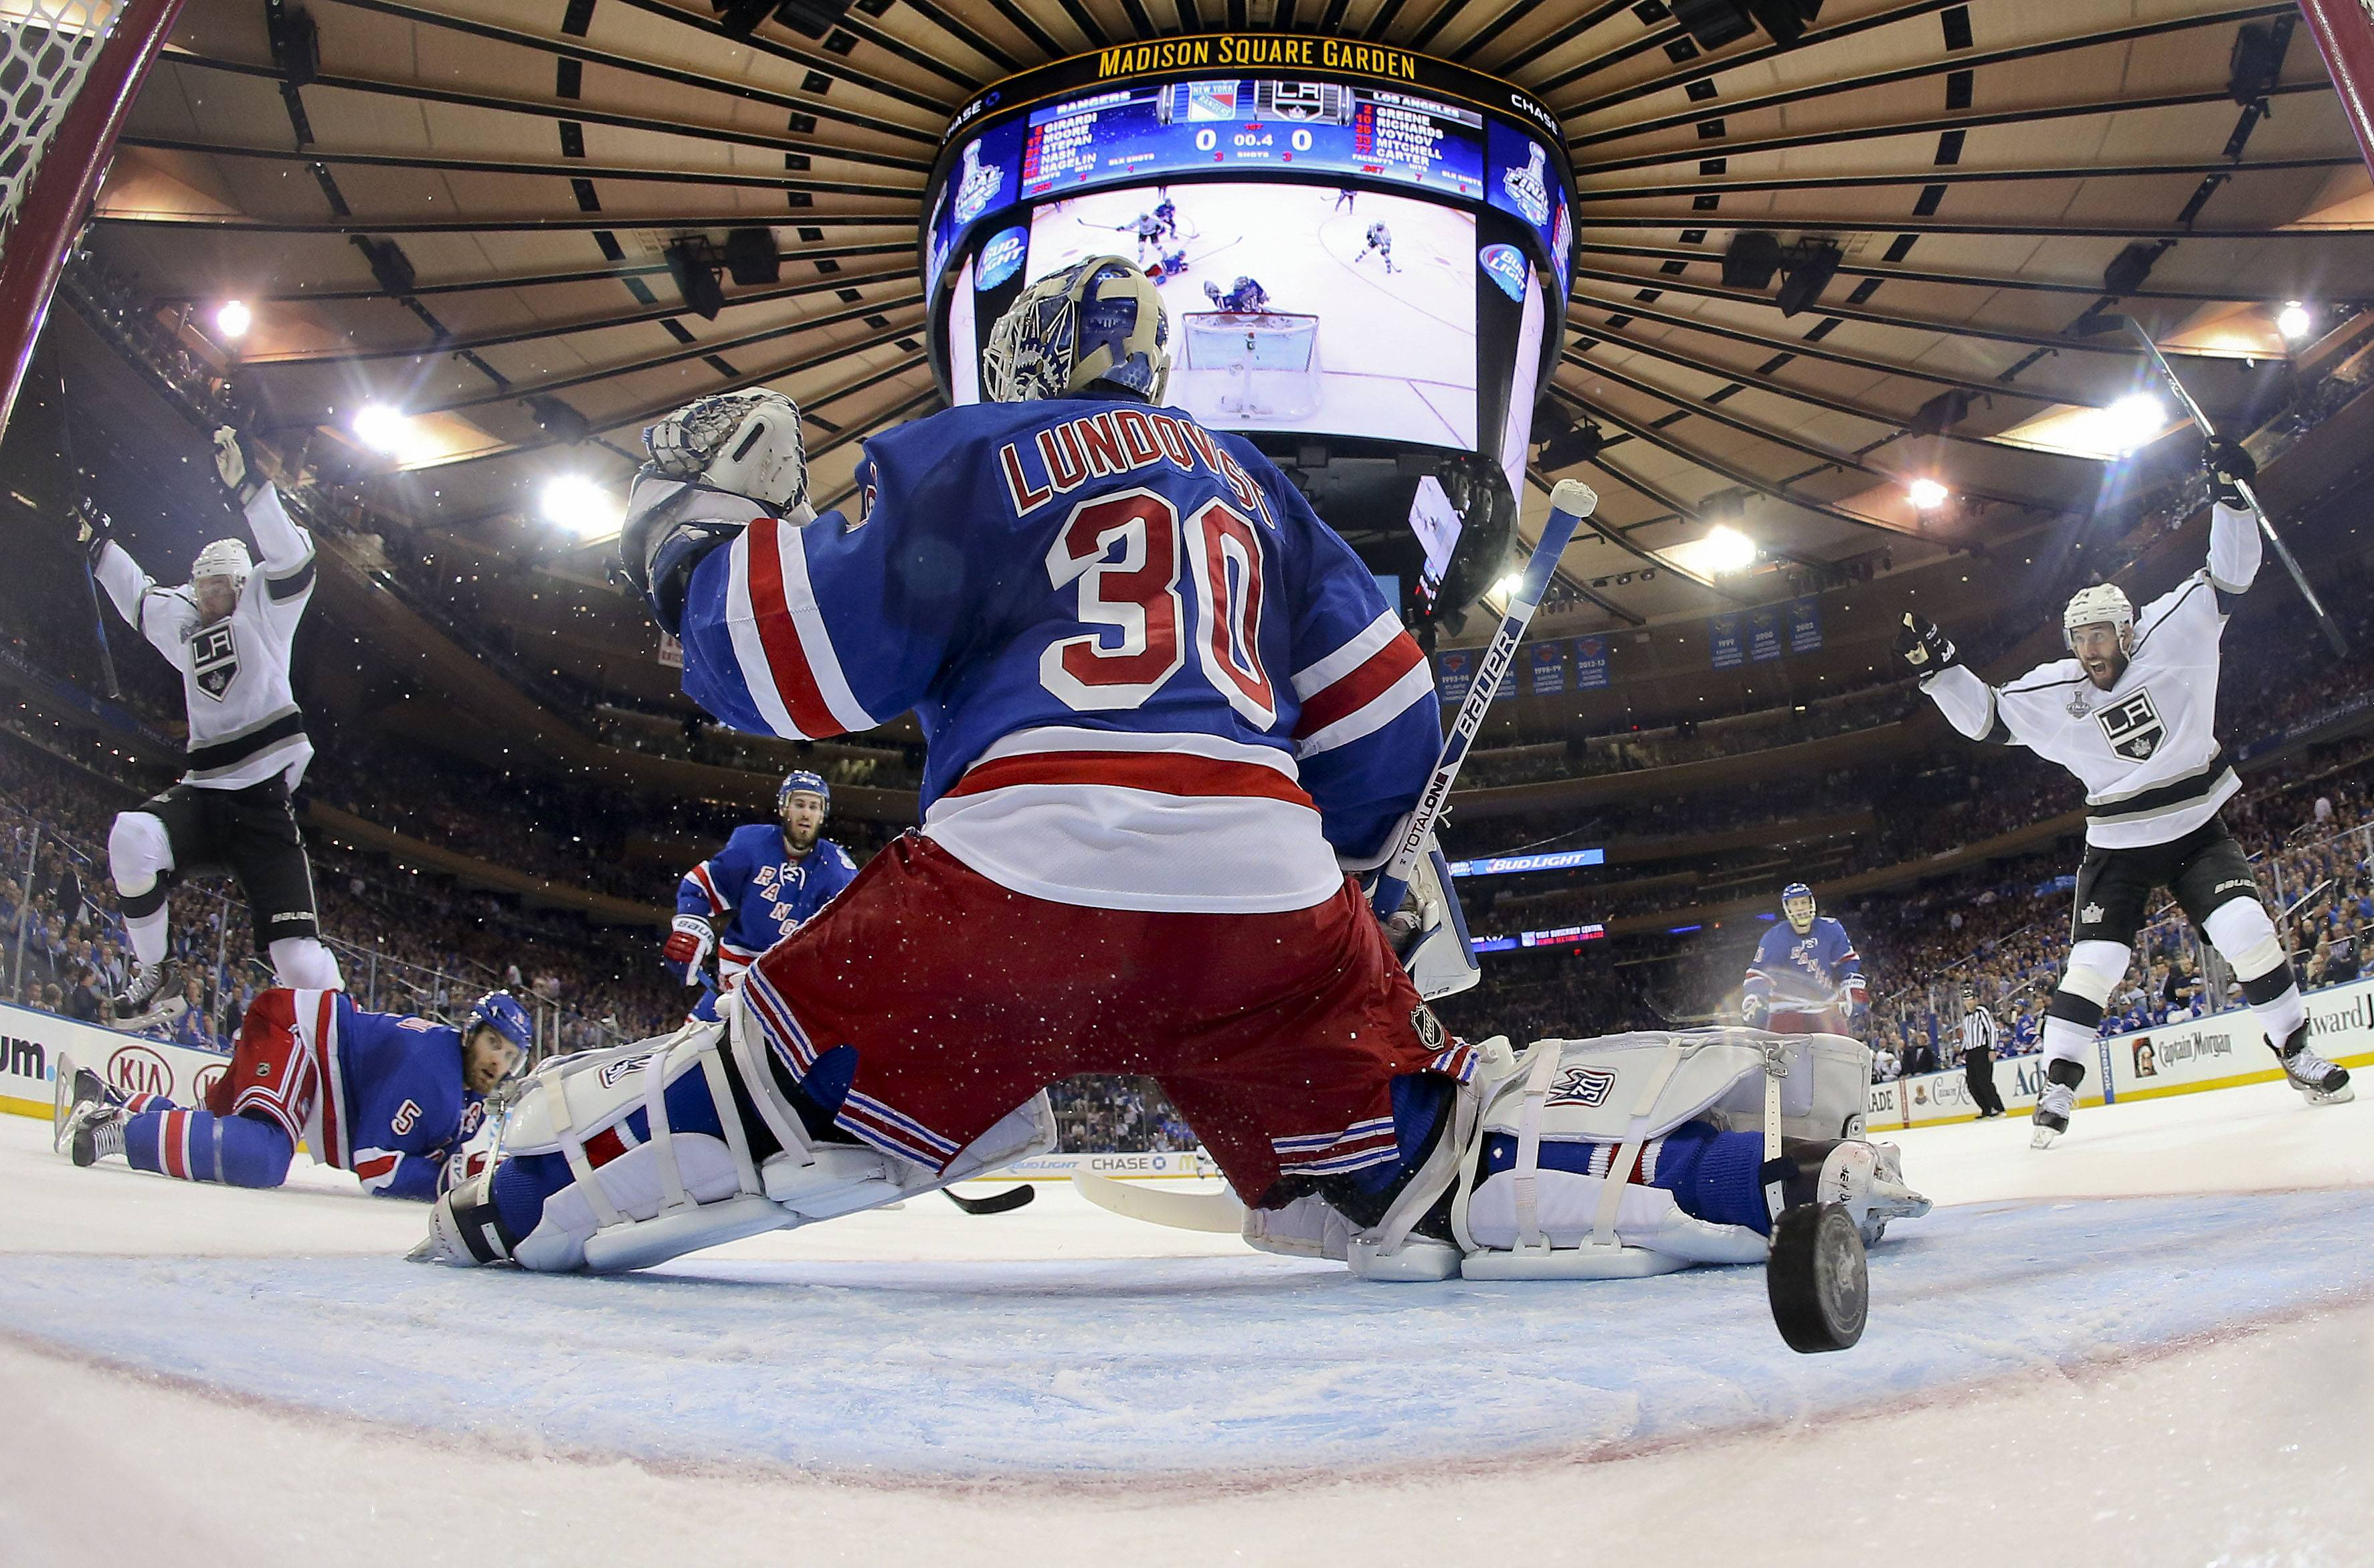 The New York Rangers are down 0-3 in the Stanley Cup Finals against the Los Angeles Kings. Game 4 is Wednesday night at Madison Square Garden in New York.